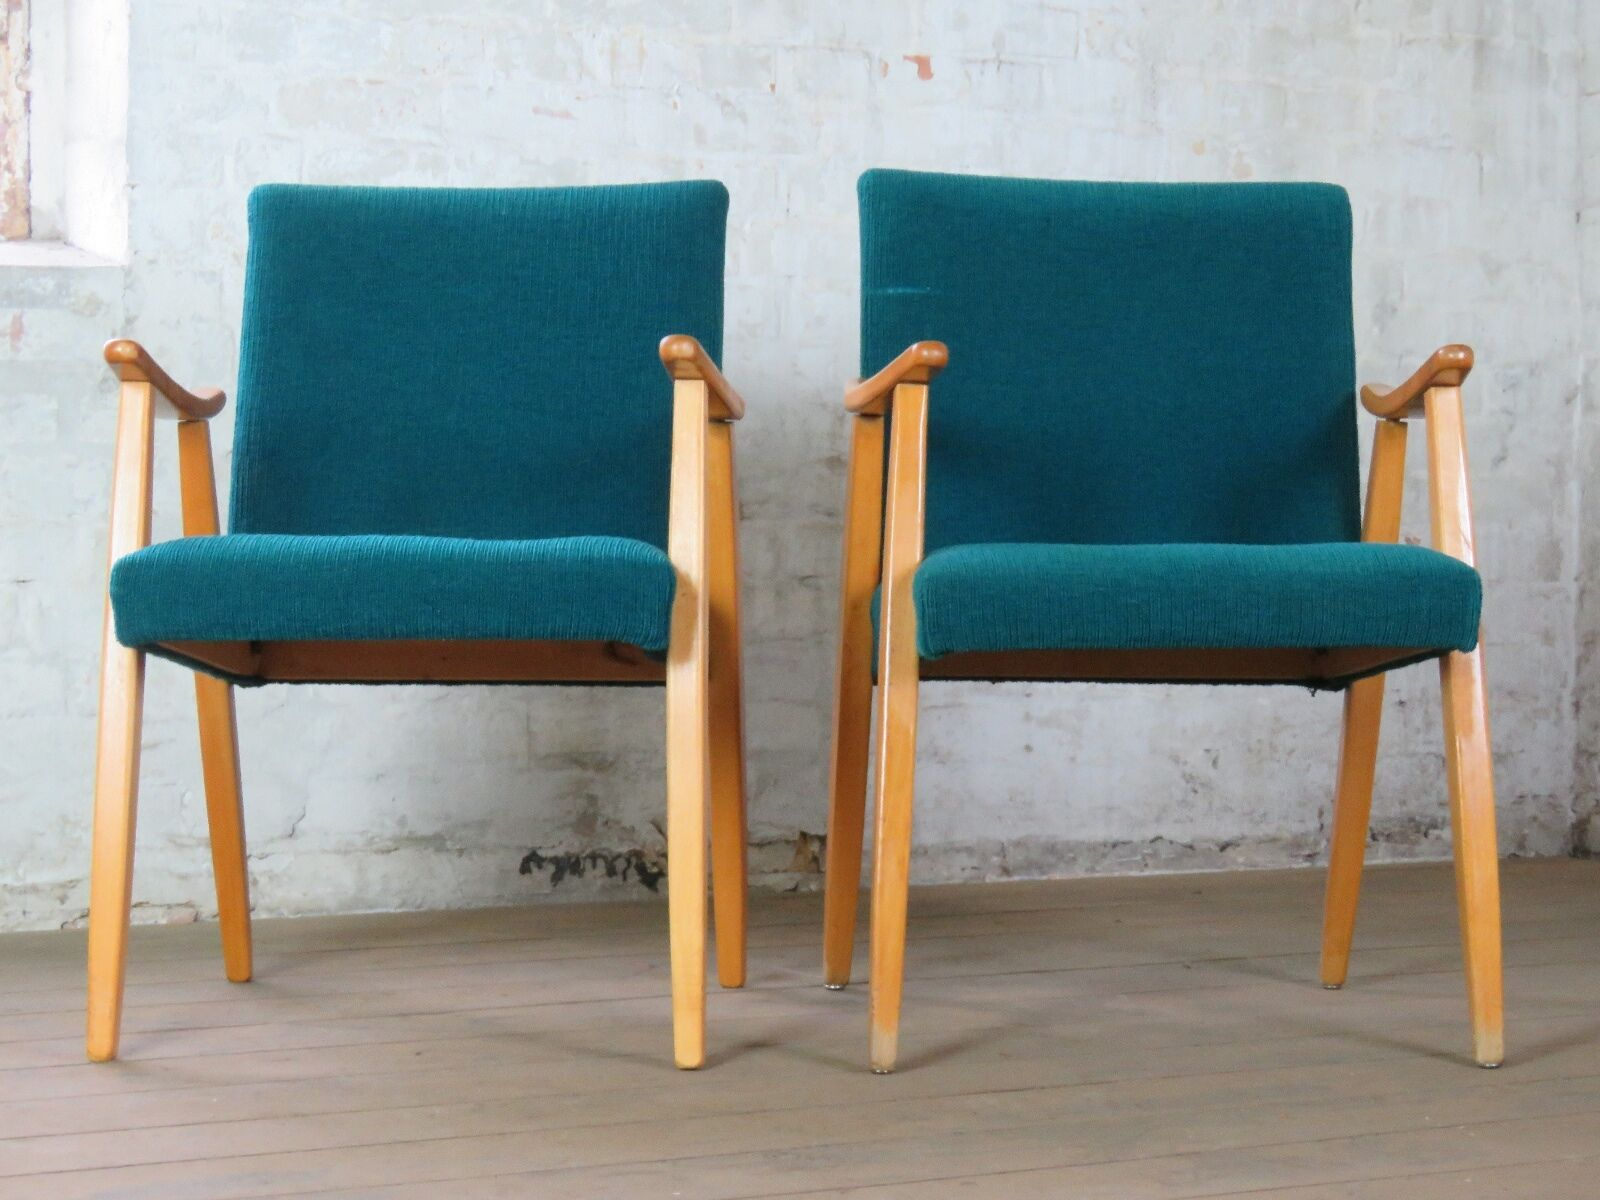 1 / 3 Mid Century Retro Cocktail Easy Chair Armchair Sessel Vintage 50s 60s